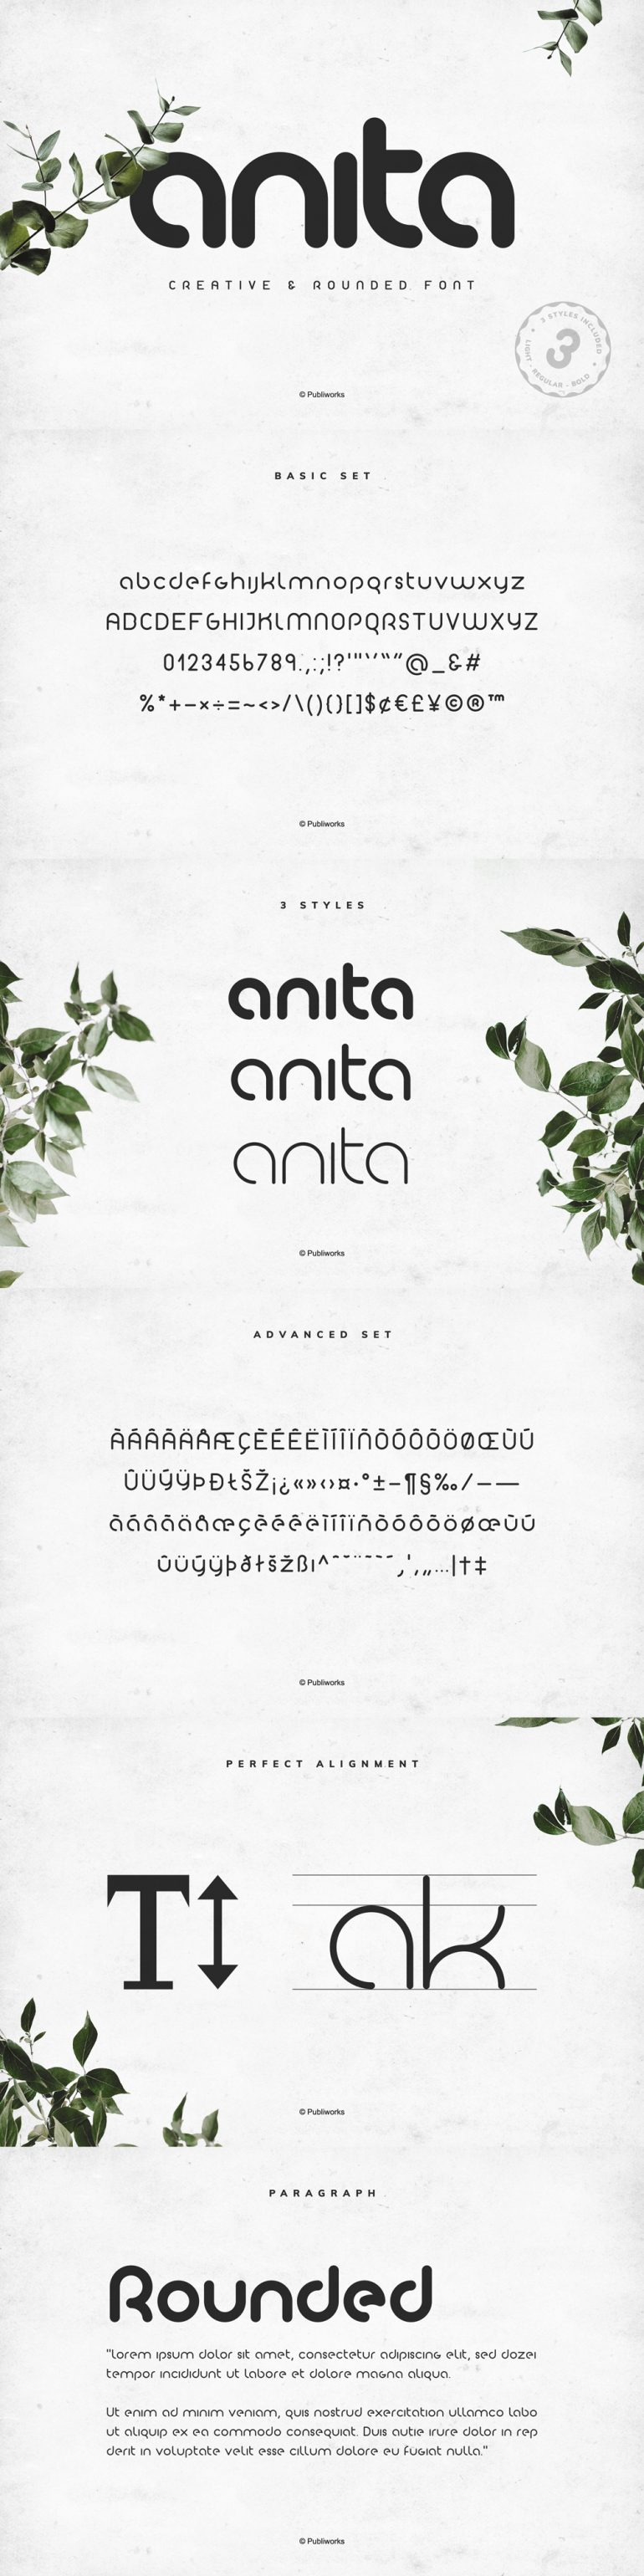 Anita PW – Geometric & Rounded Font